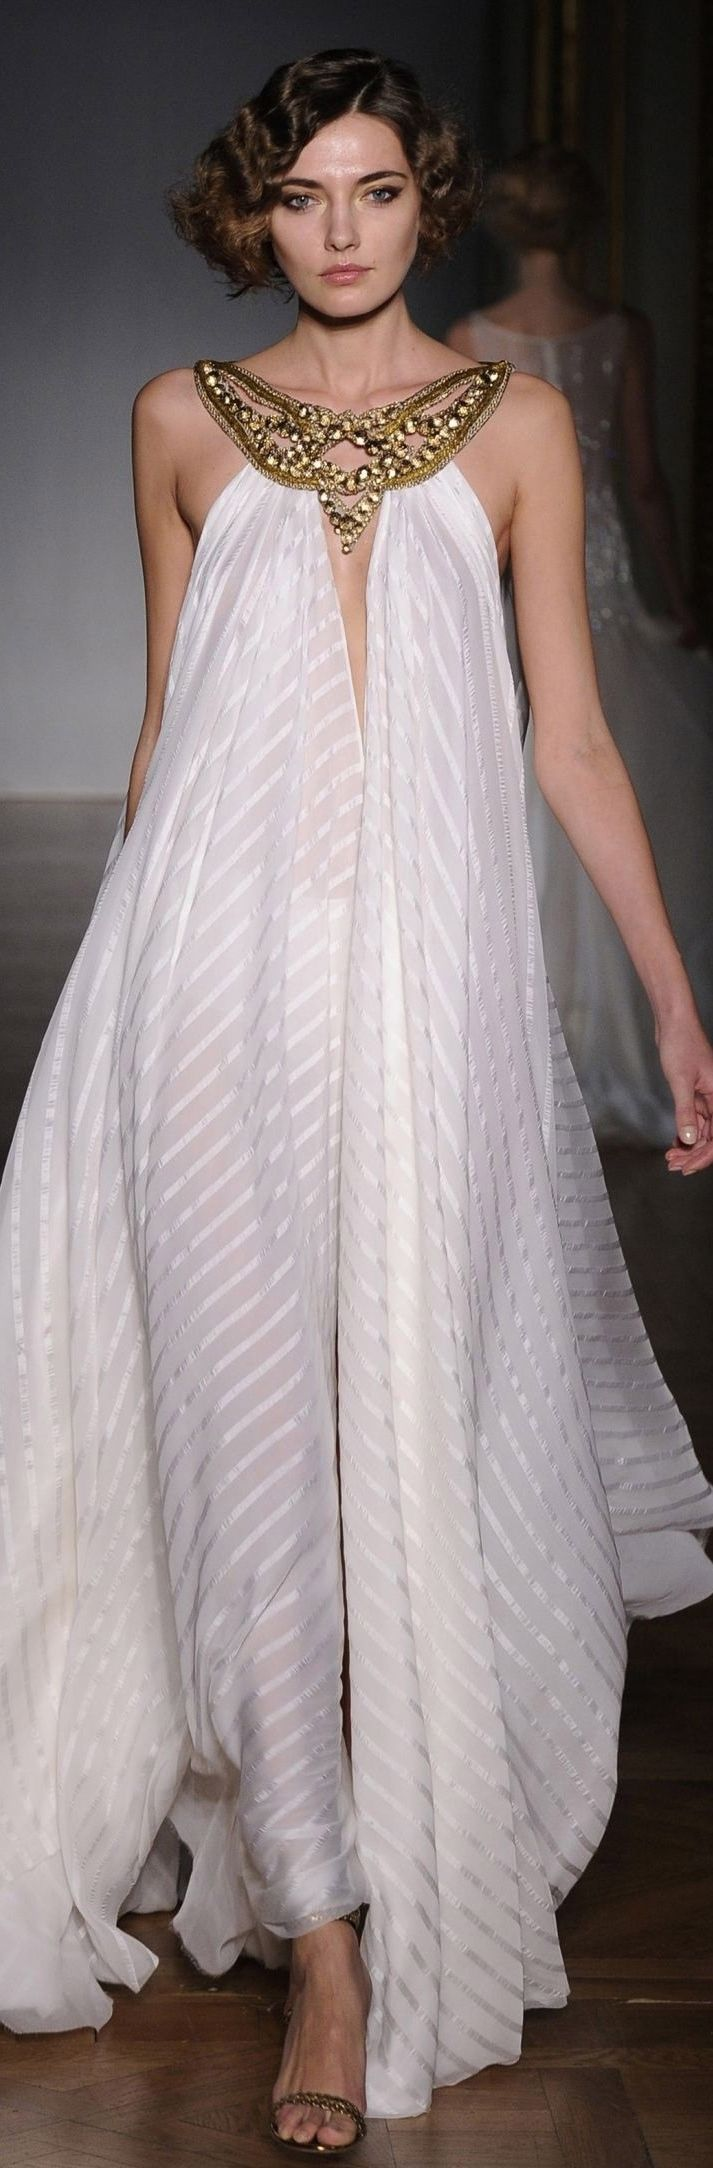 Egyptian inspired modern day style - I Like The Simplicity Of This Dress And The Flowing Material Dilek Hanif Couture Egyptian Style White Maxi Dress W Gold Neckline Embellishment 2011